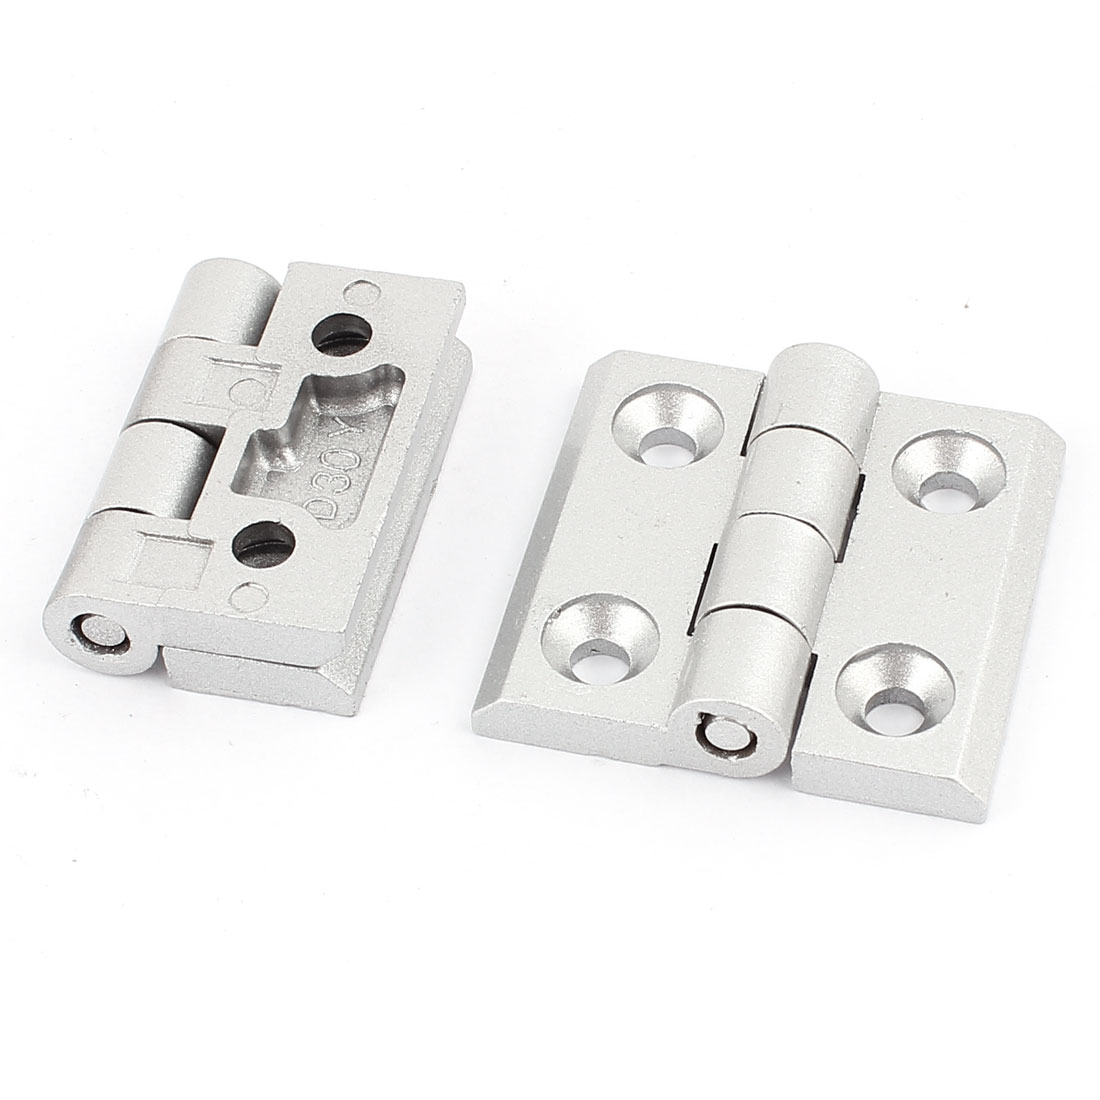 Cabinet Drawer Aluminum Alloy Door Butt Hinge Replacement Part 2pcs